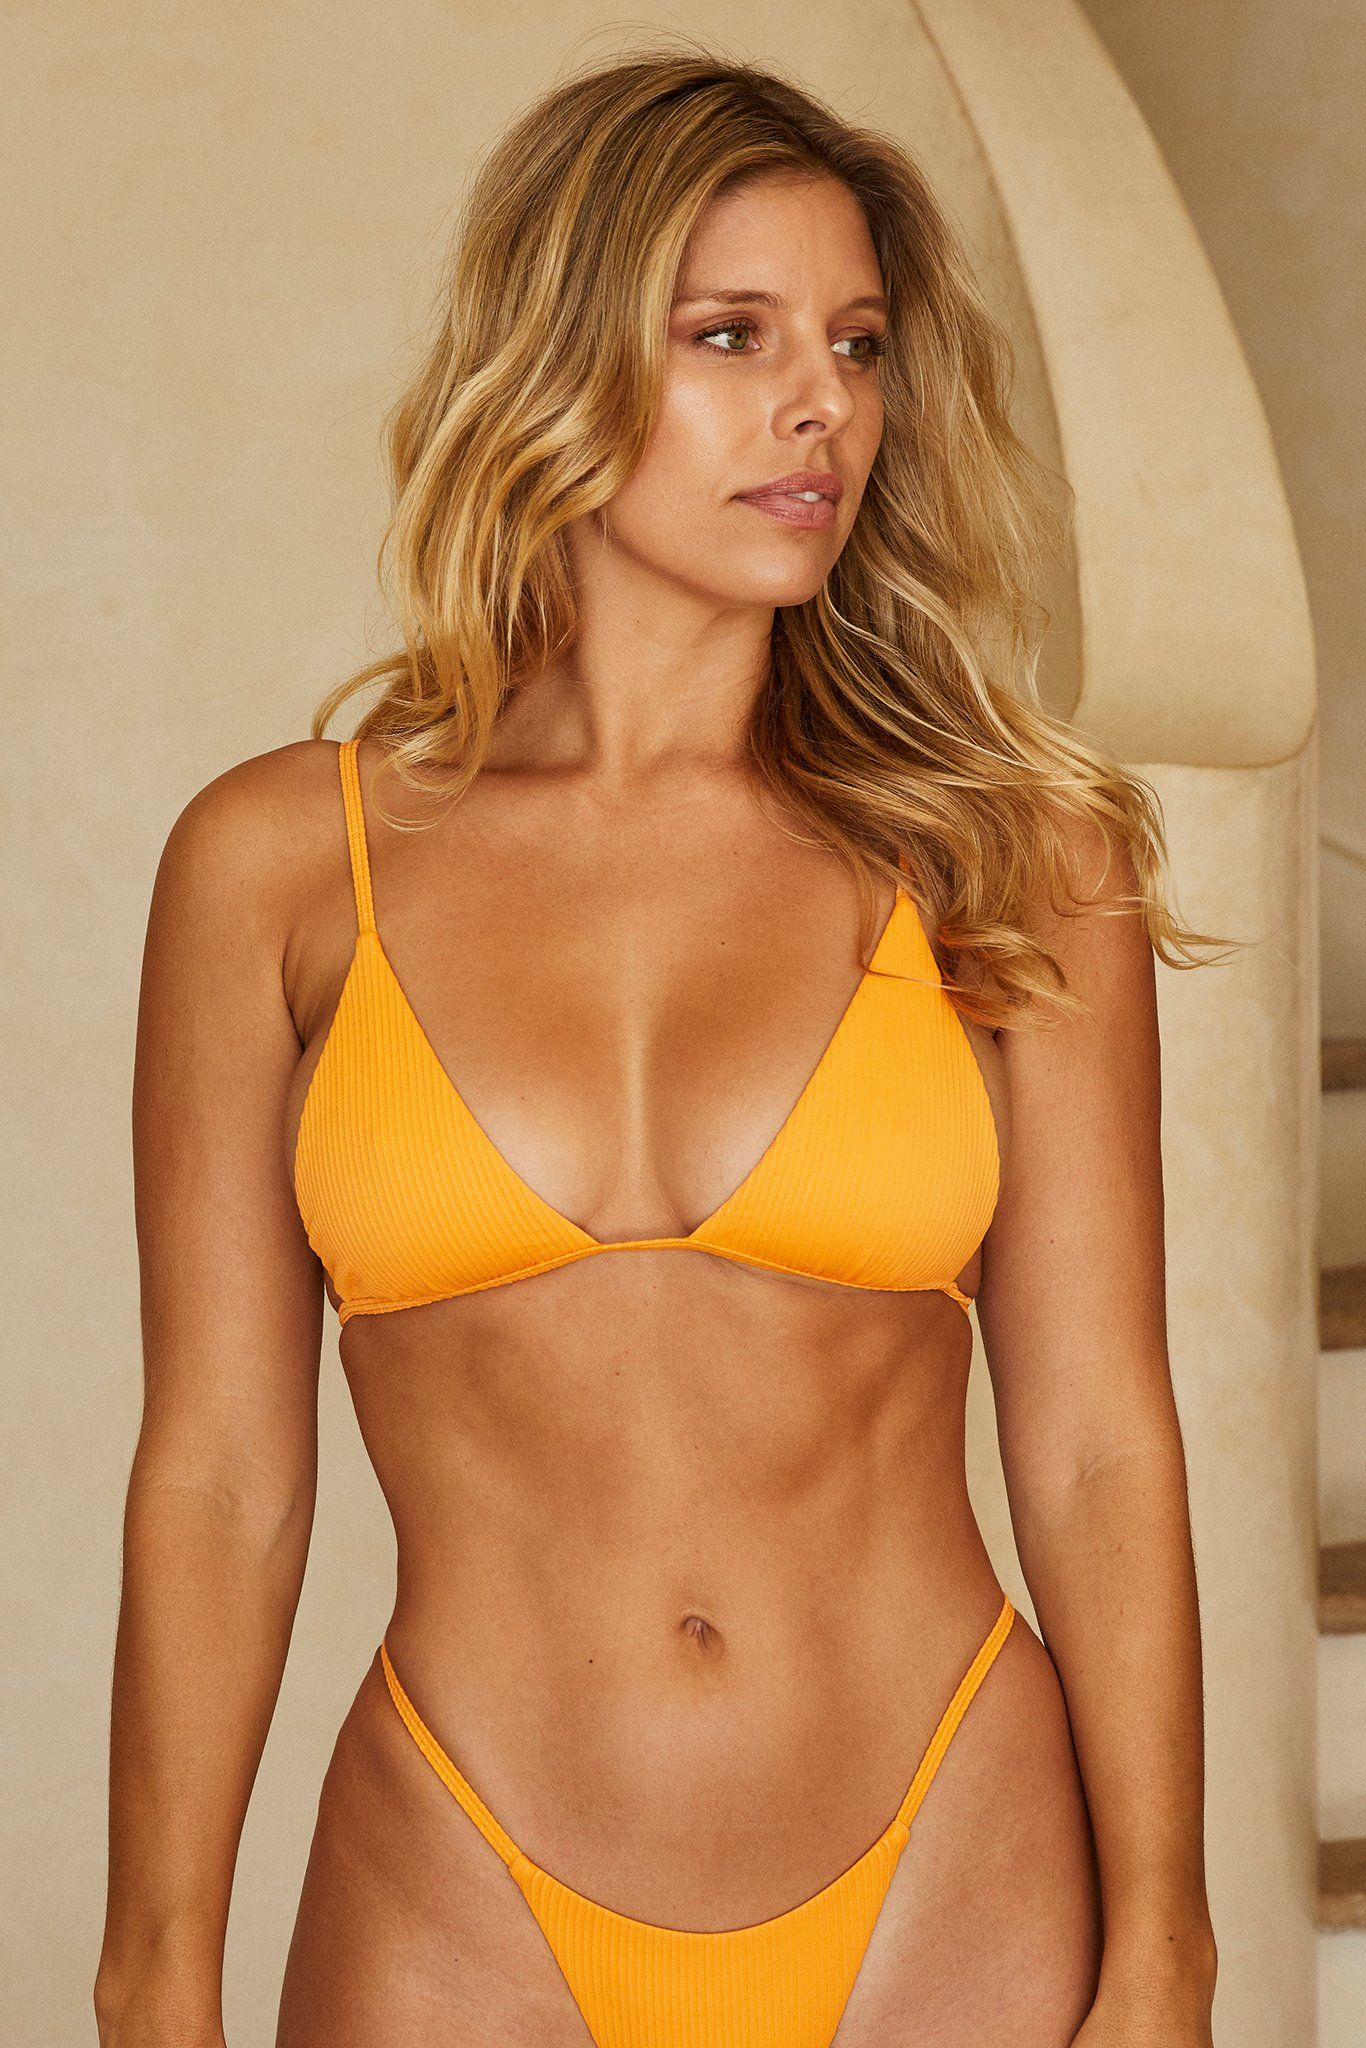 Barbados Top - Tangerine Rib by Monday Swimwear, available on mondayswimwear.com for $84 Devin Brugman Top Exact Product